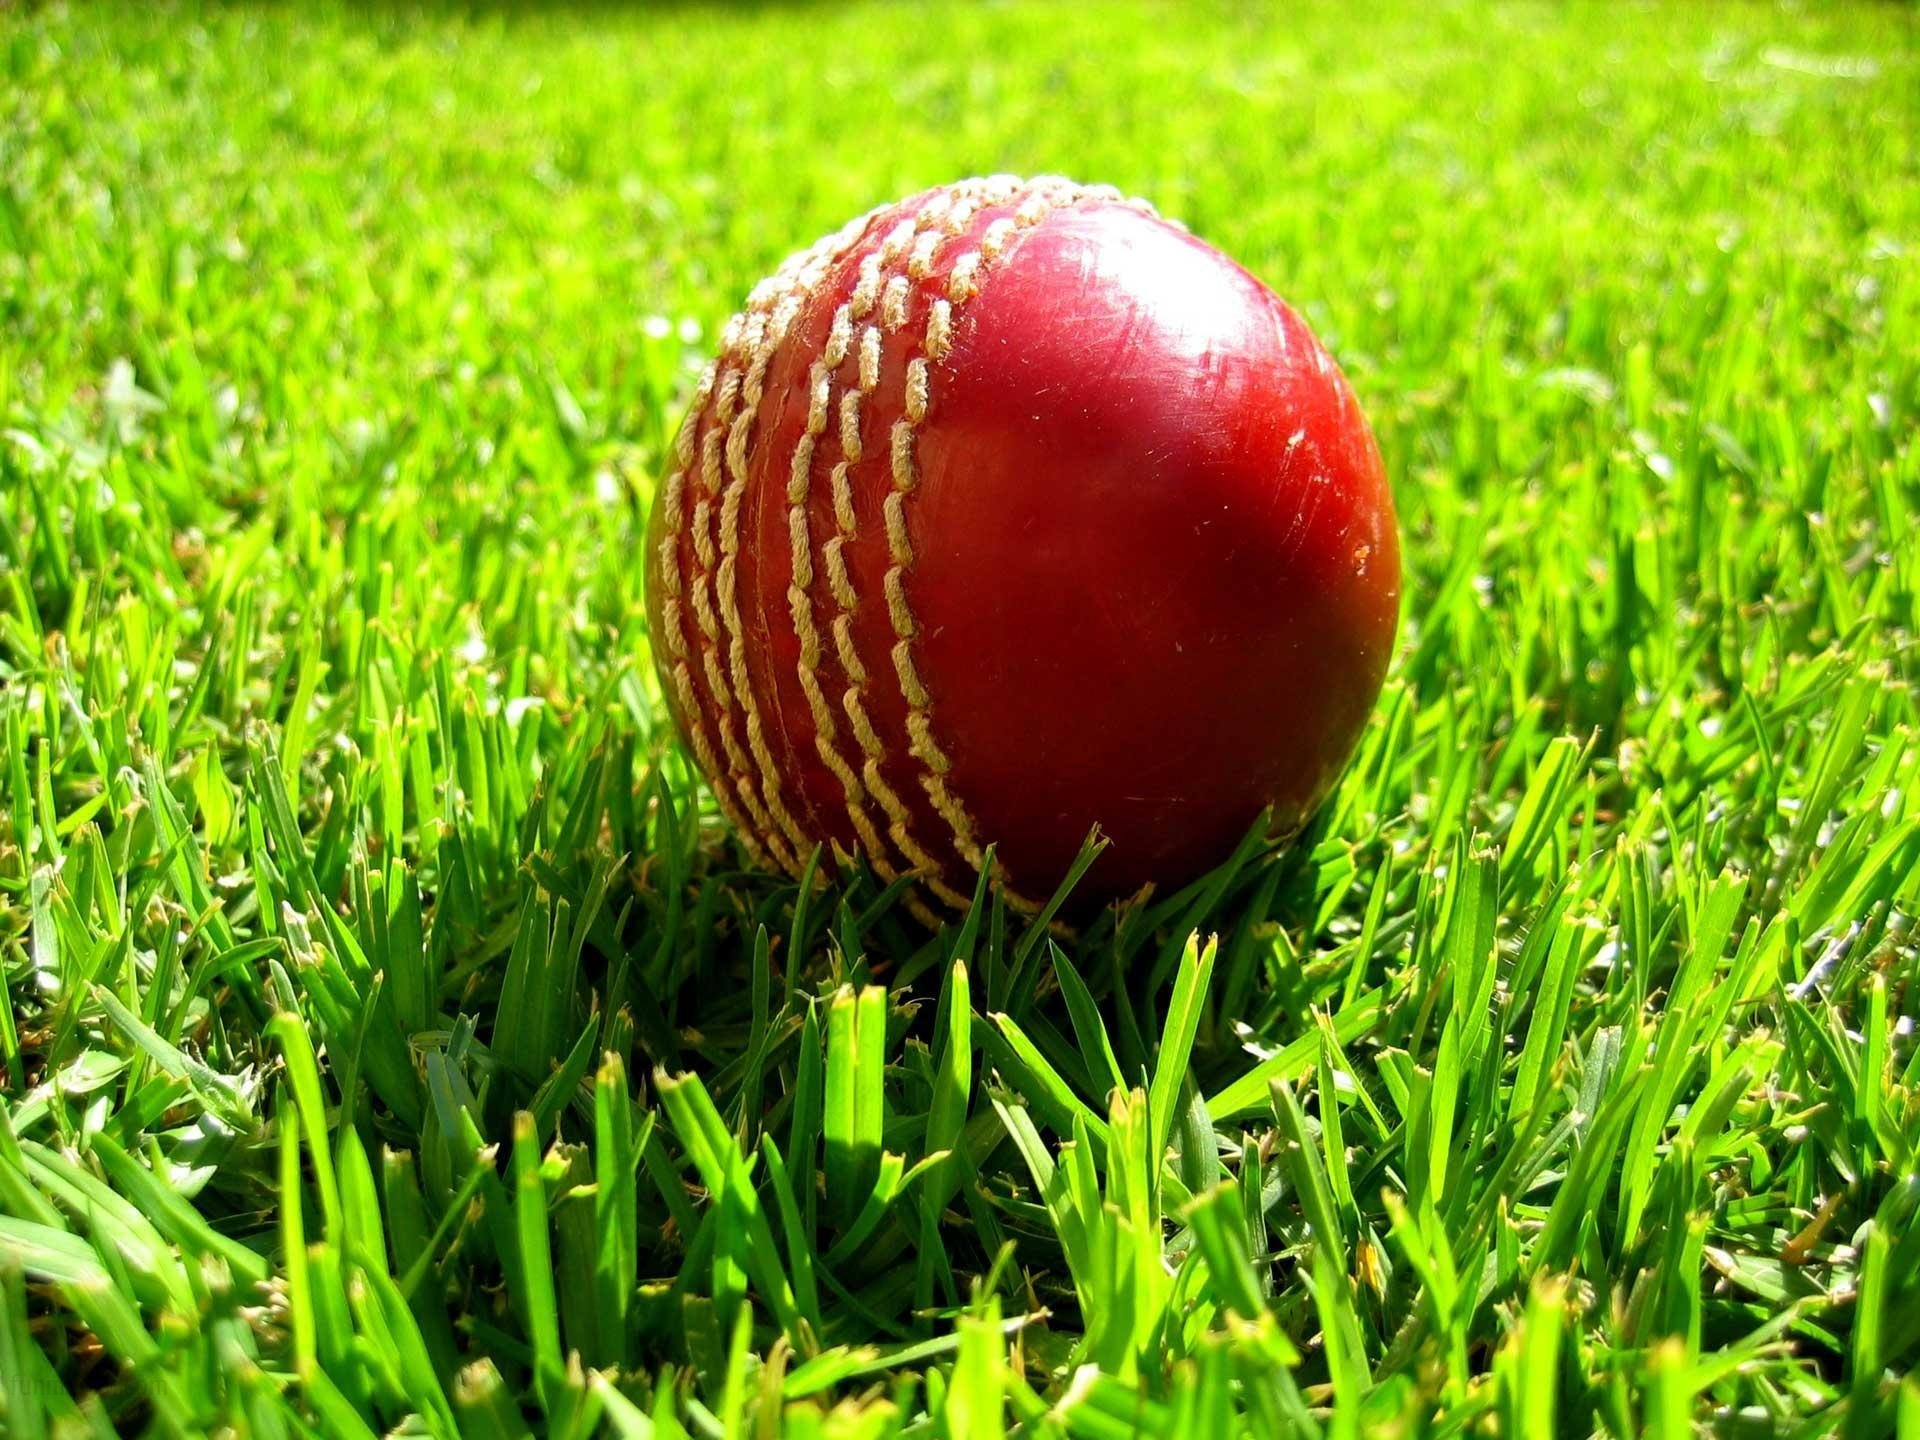 Cricket Hd Wallpaper Background Image 1920x1440 Id442881